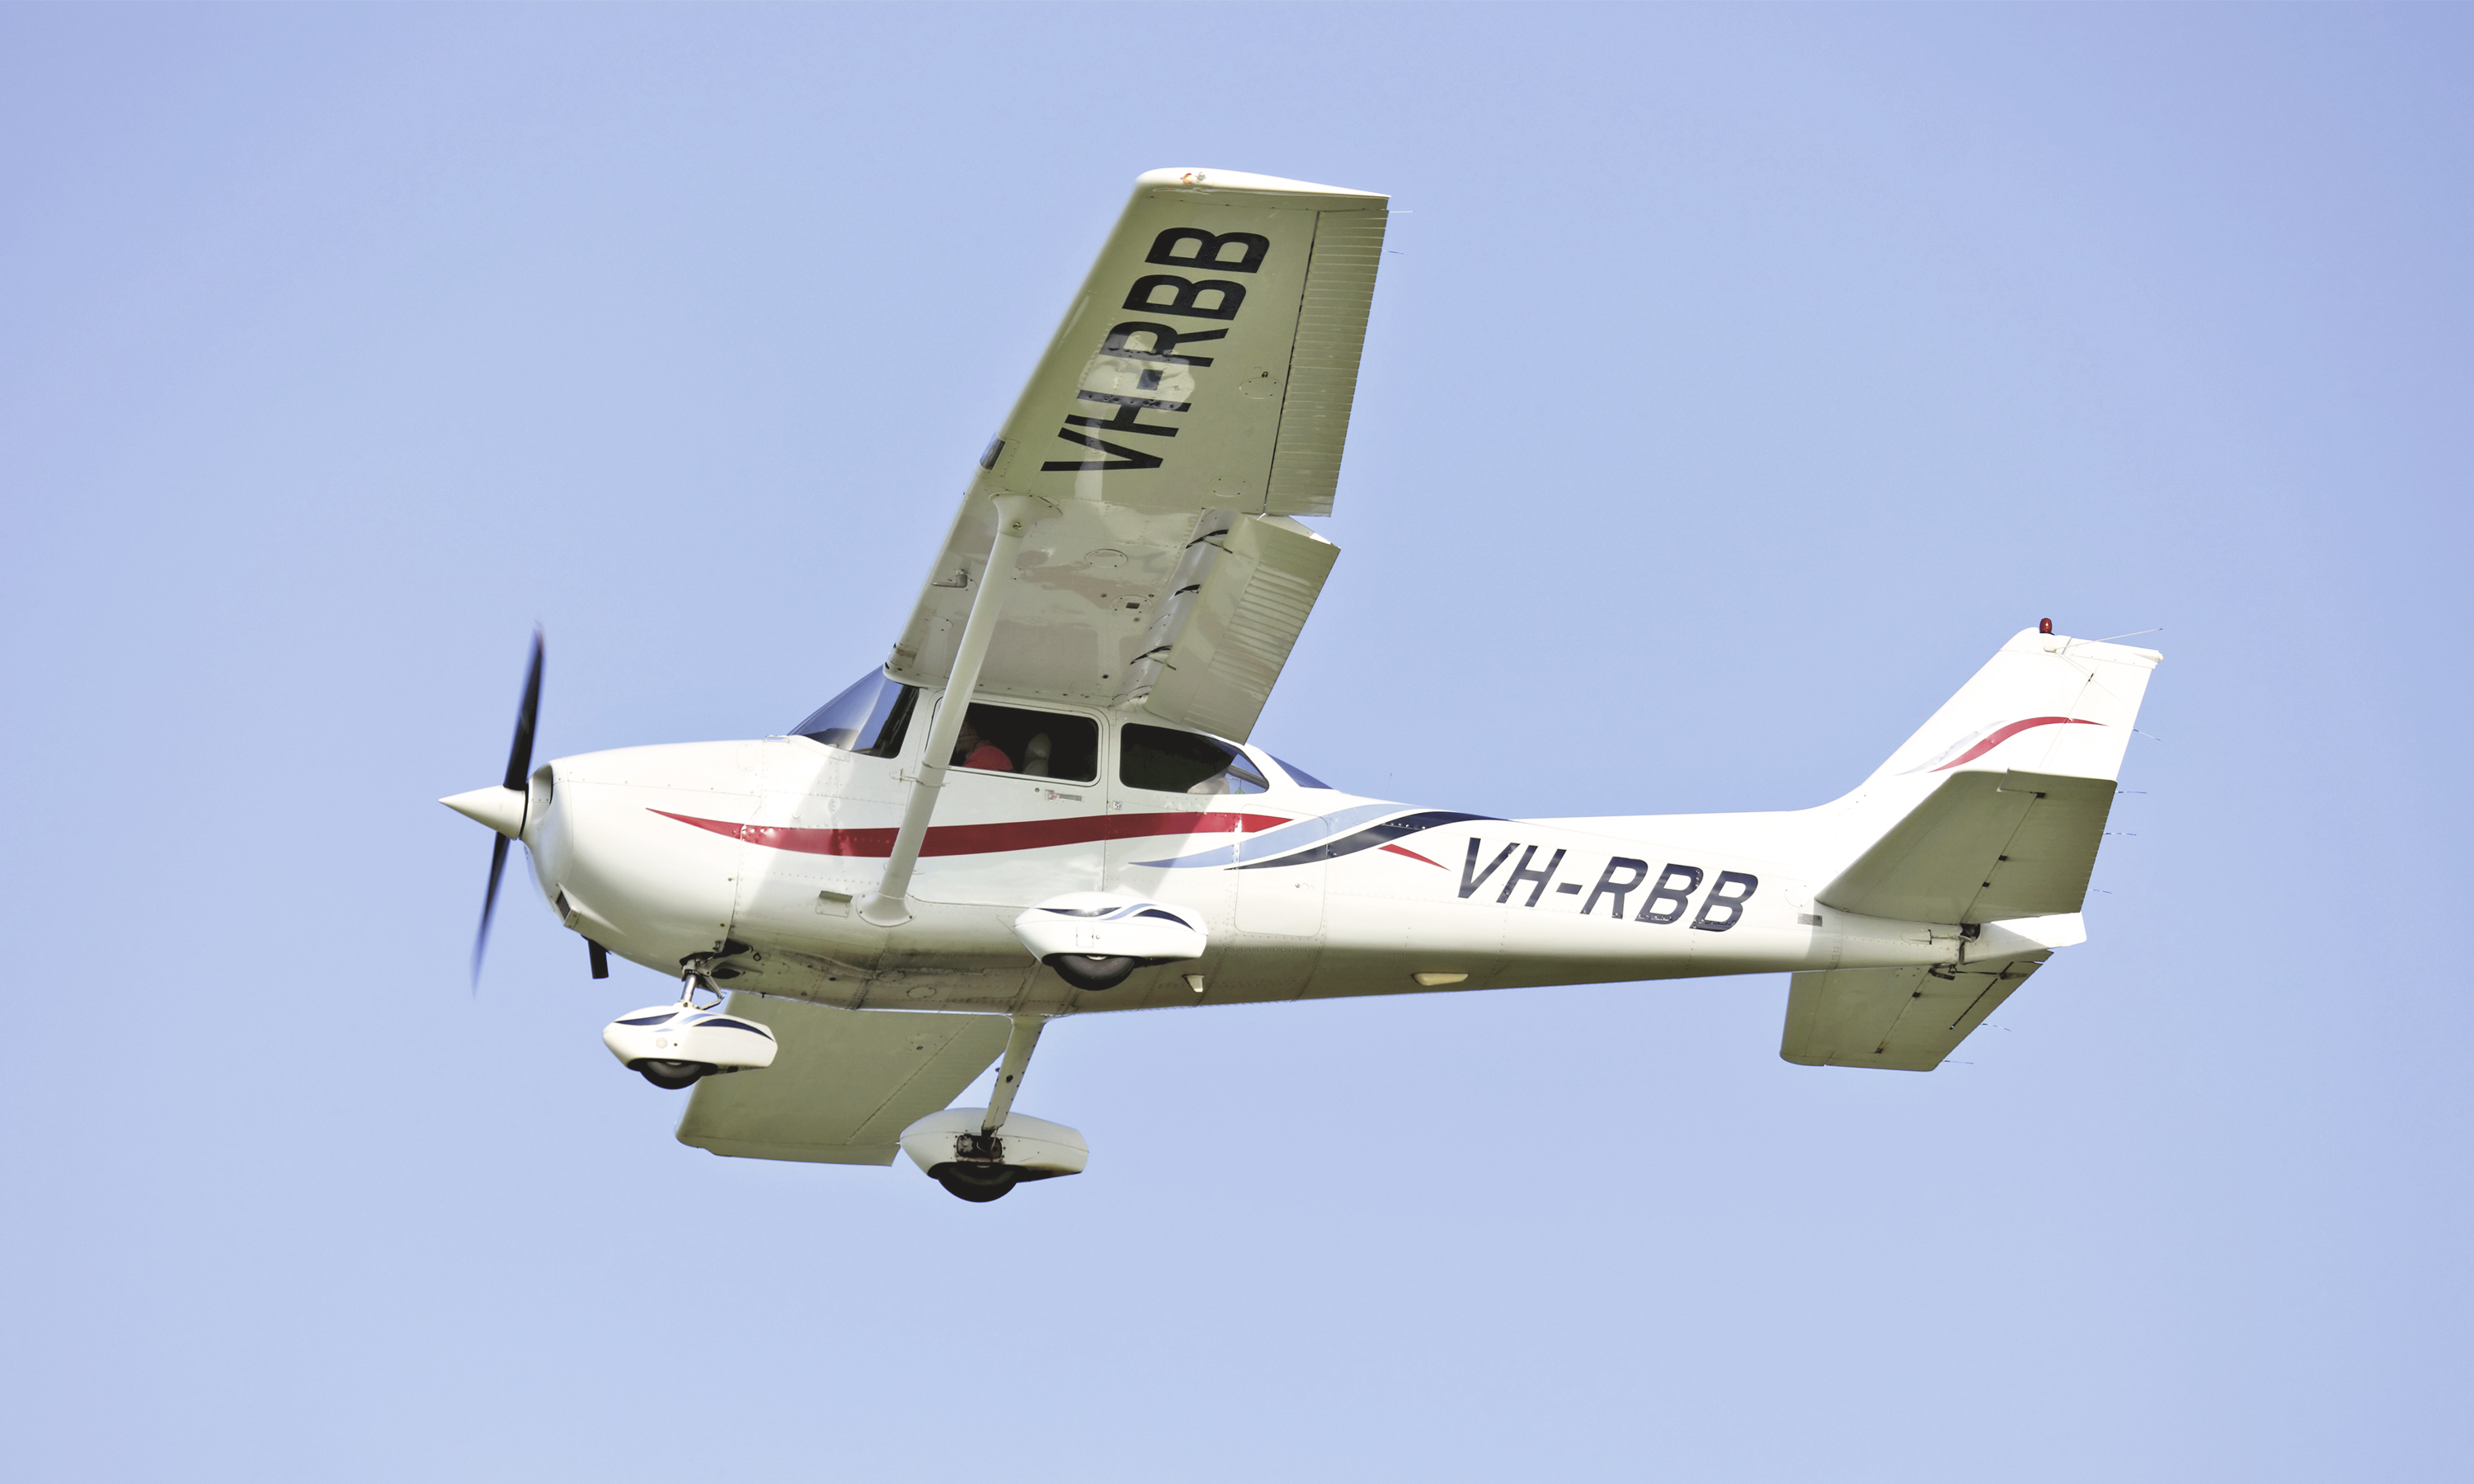 New Jersey Flying Lessons - Deals & Coupons in New Jersey